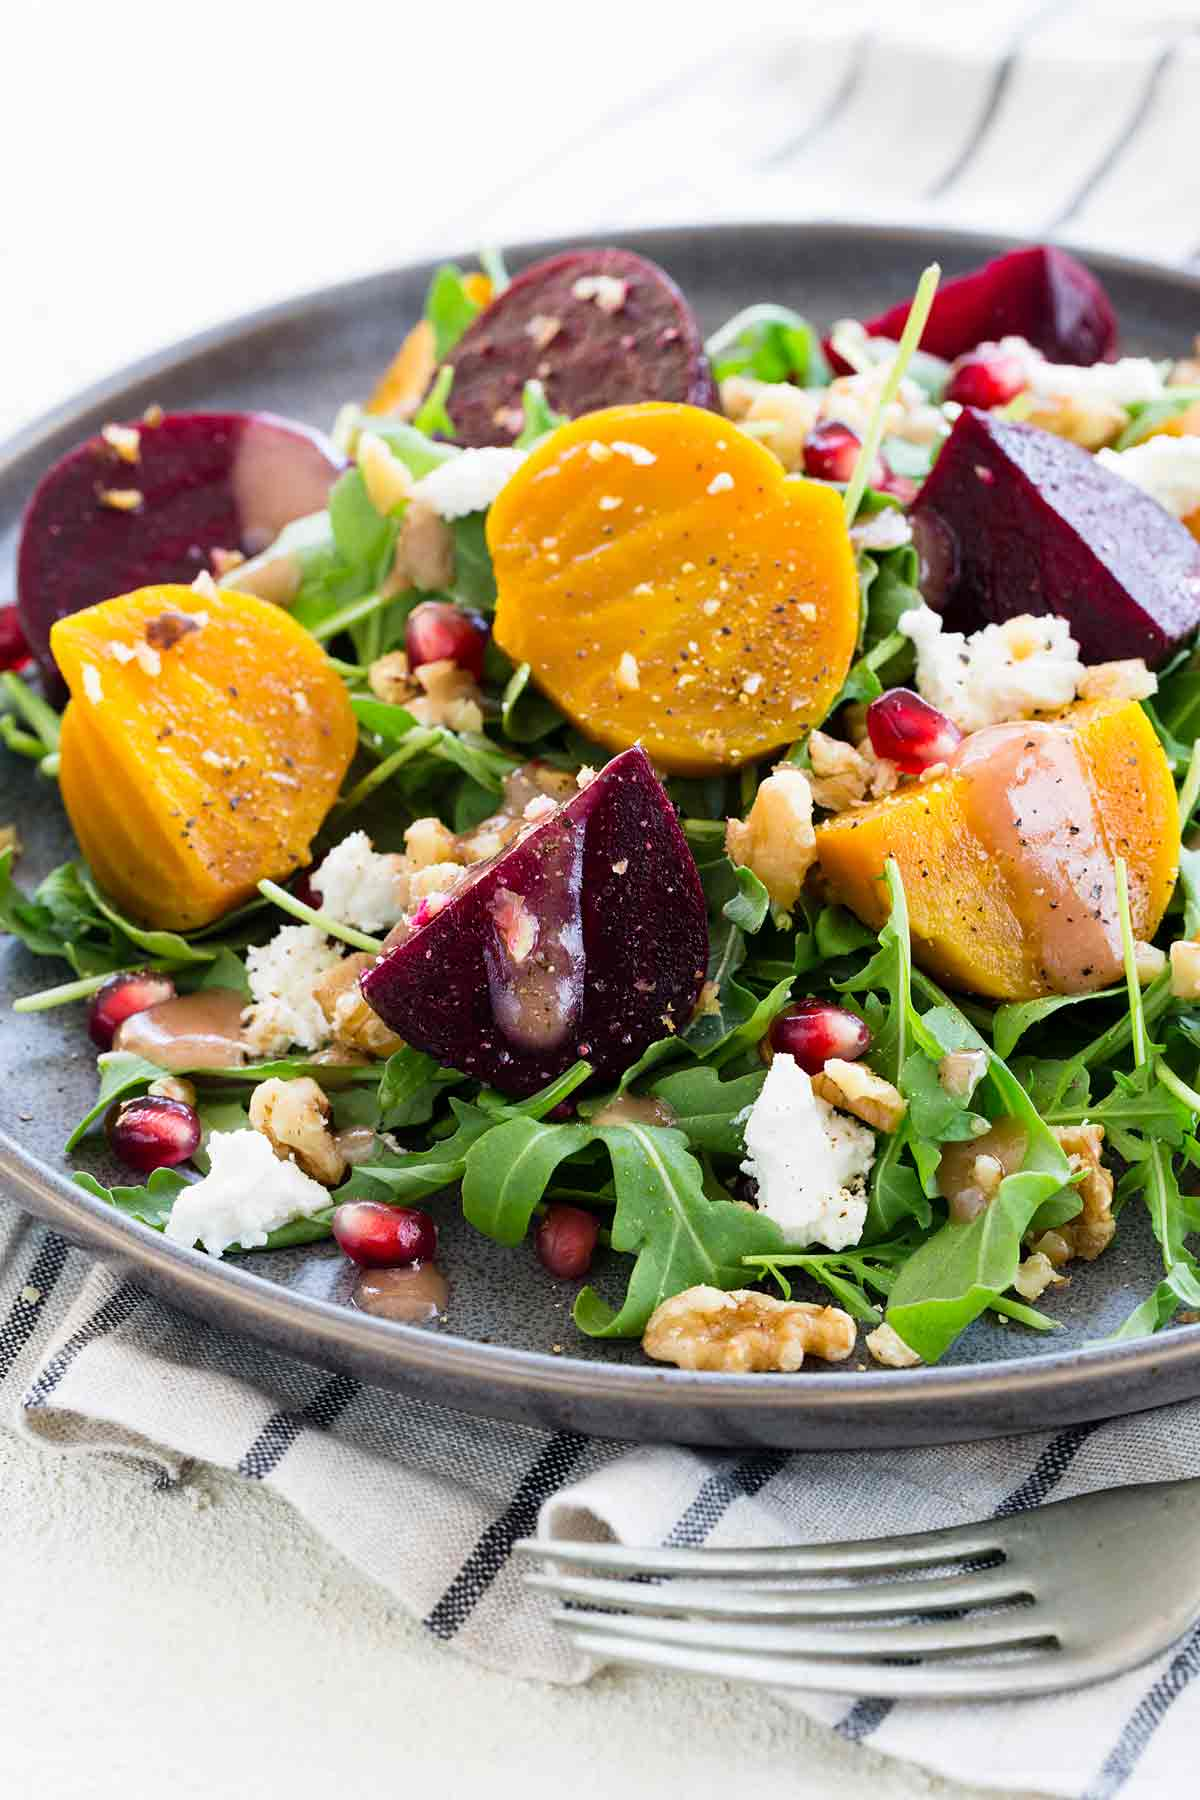 Sliced golden beets and purple beets on top of a green salad